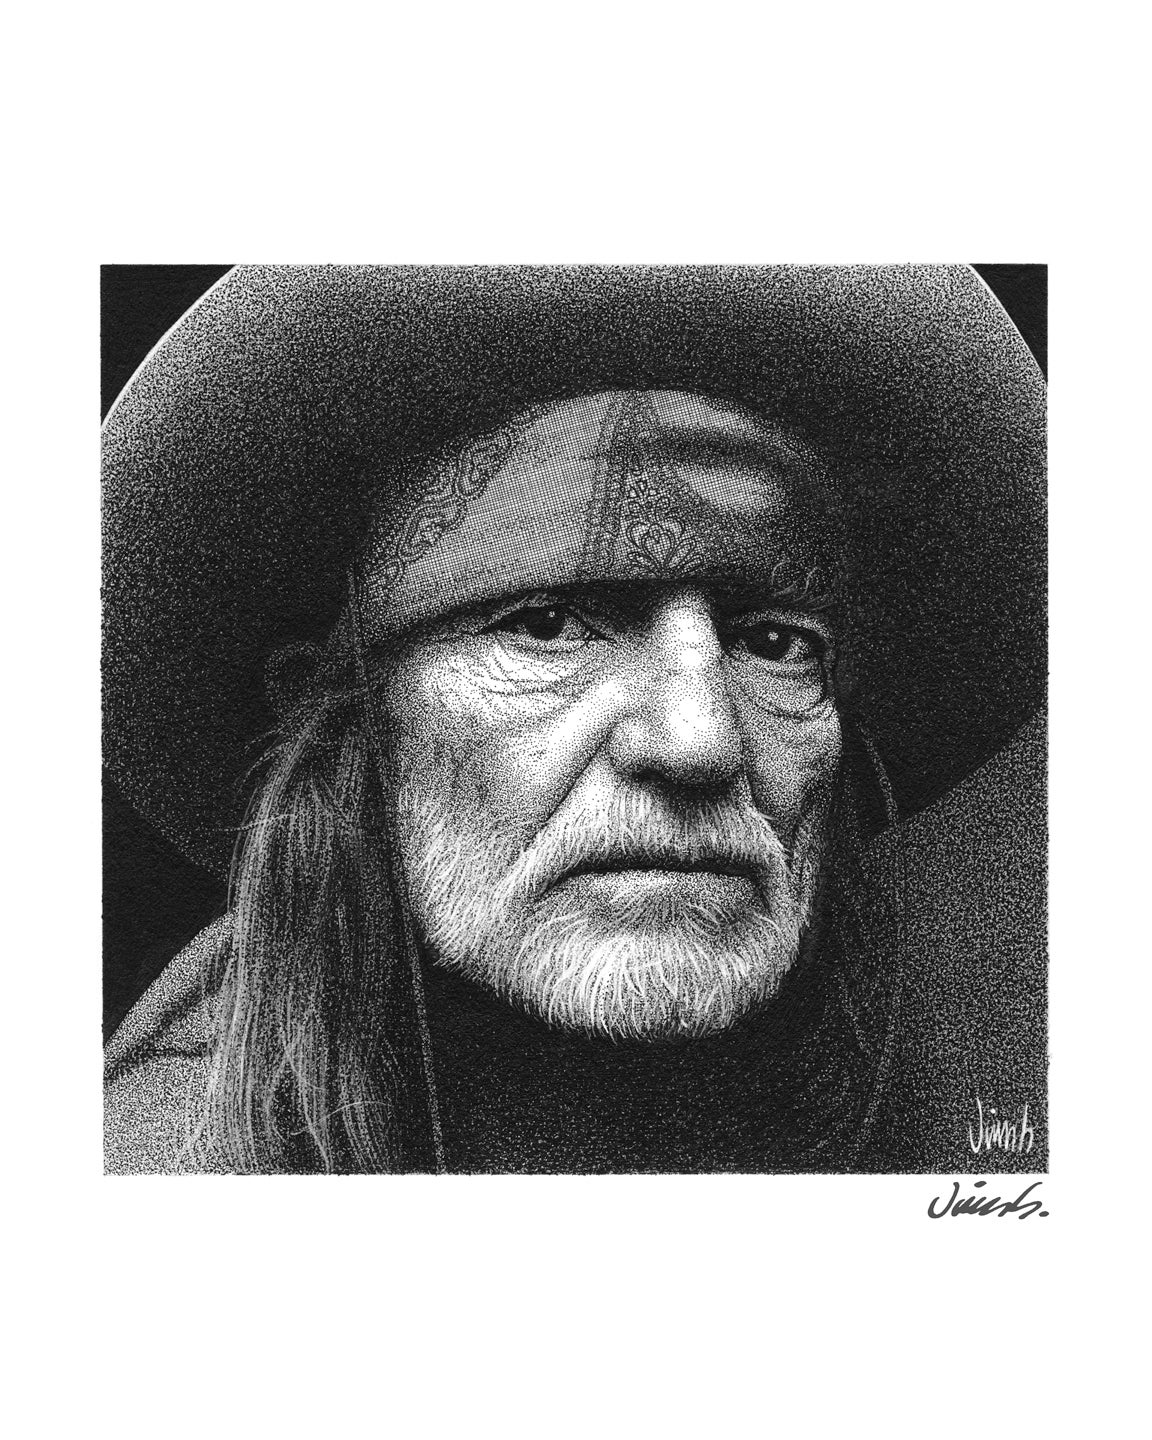 Image of WILLIE NELSON poster print